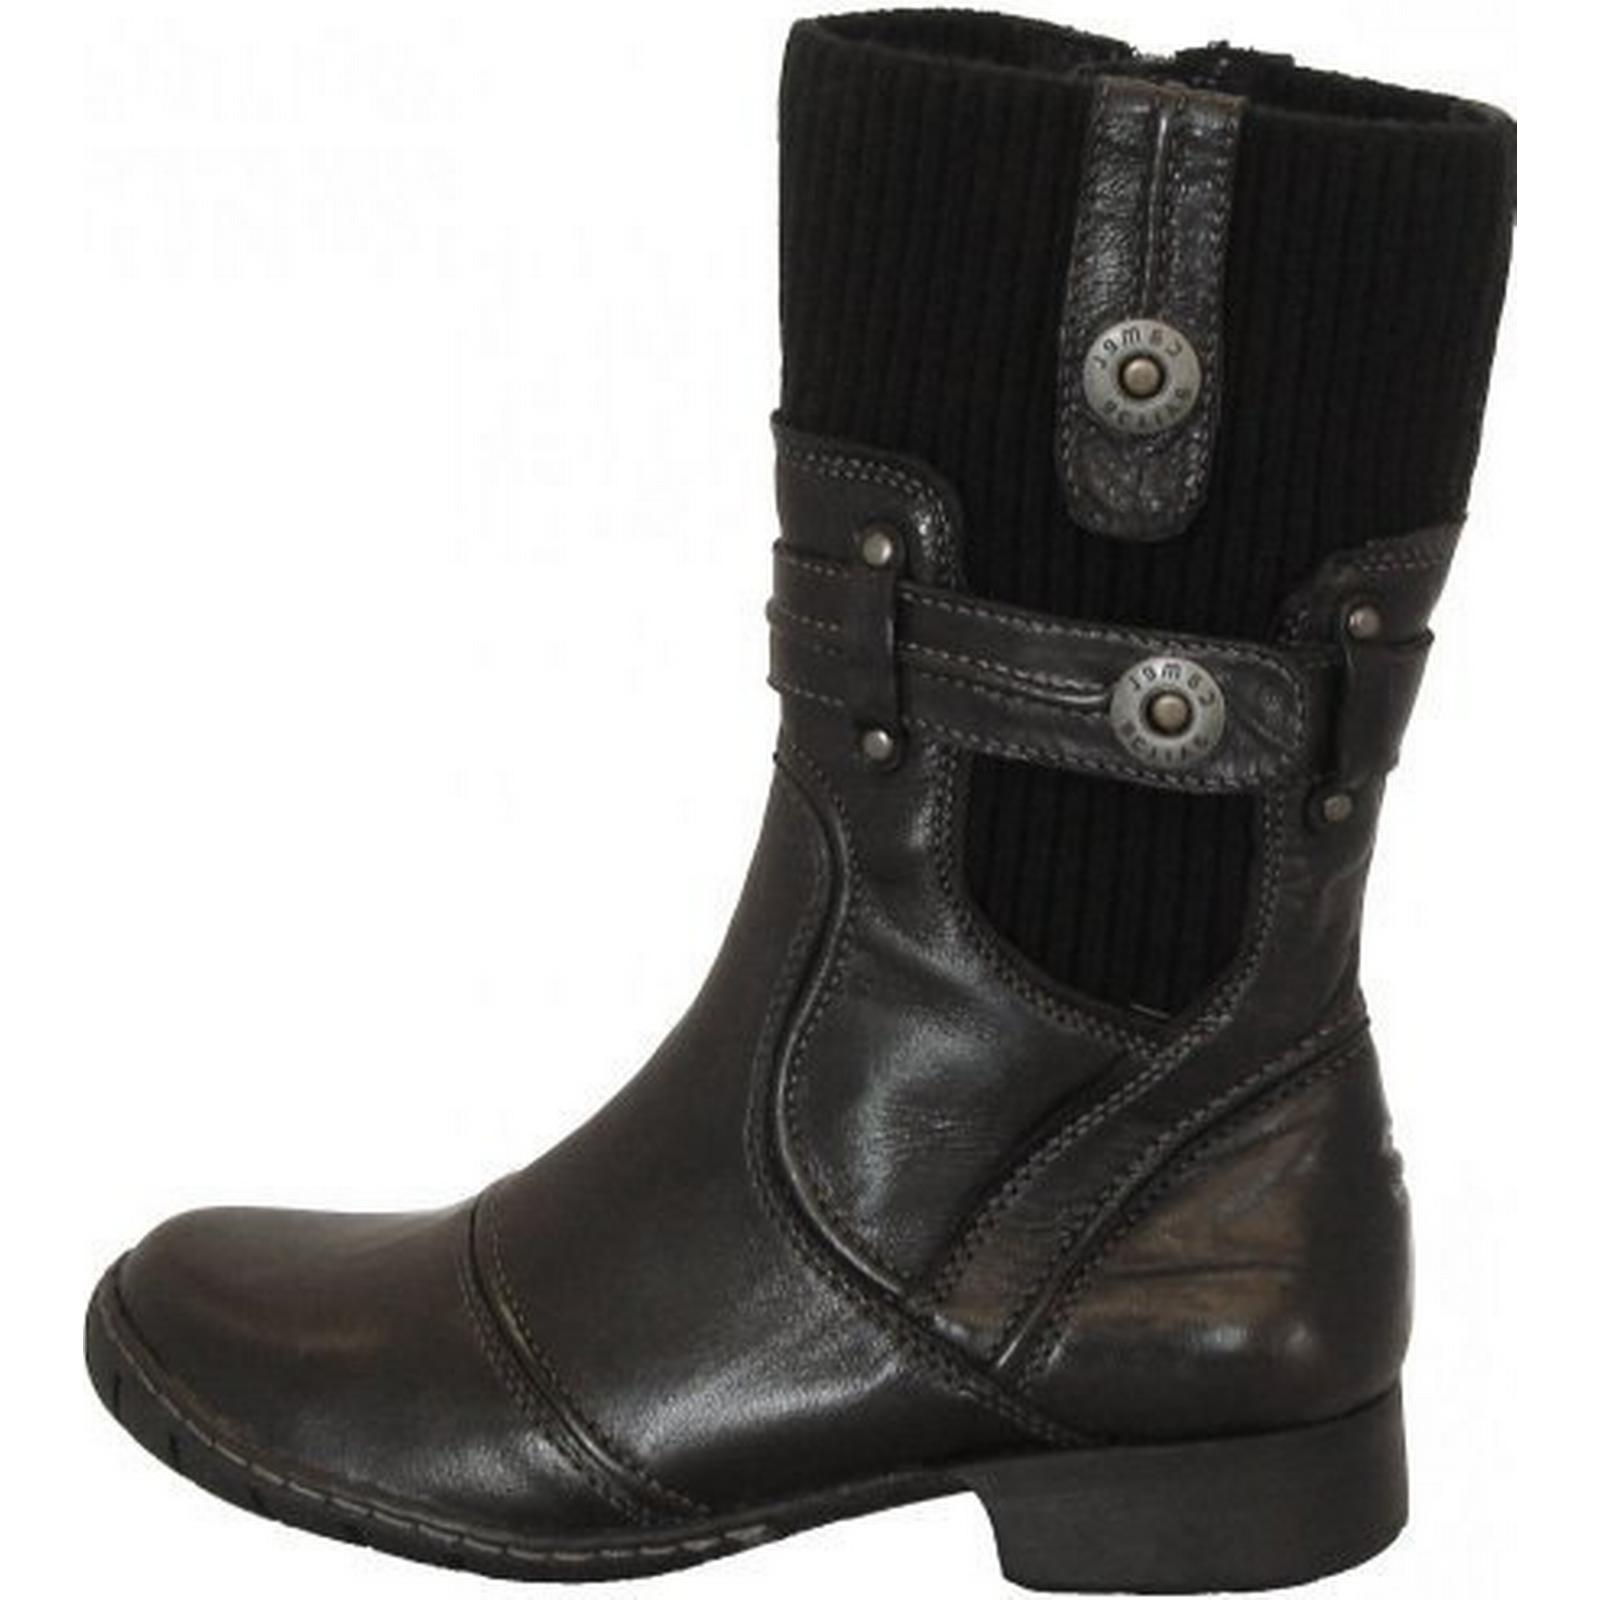 Camel Vegas Active Vegas Camel short boots in black Size: 6, Colour: BLACK 1bd85a